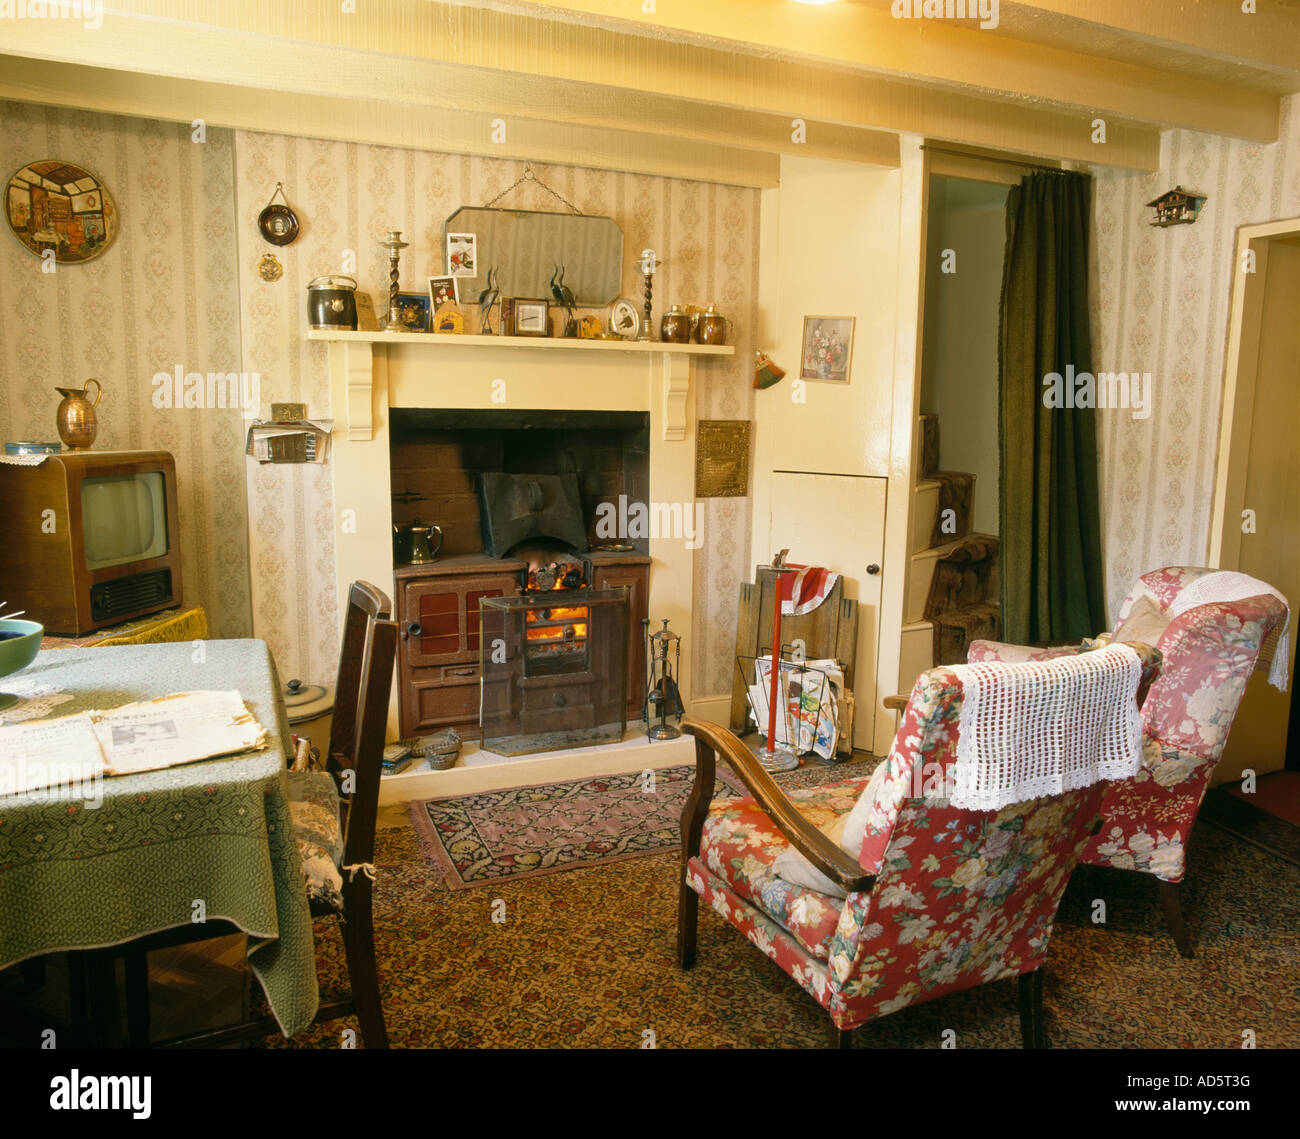 Floral Patterned Chairs In Front Of Fireplace In Fifties